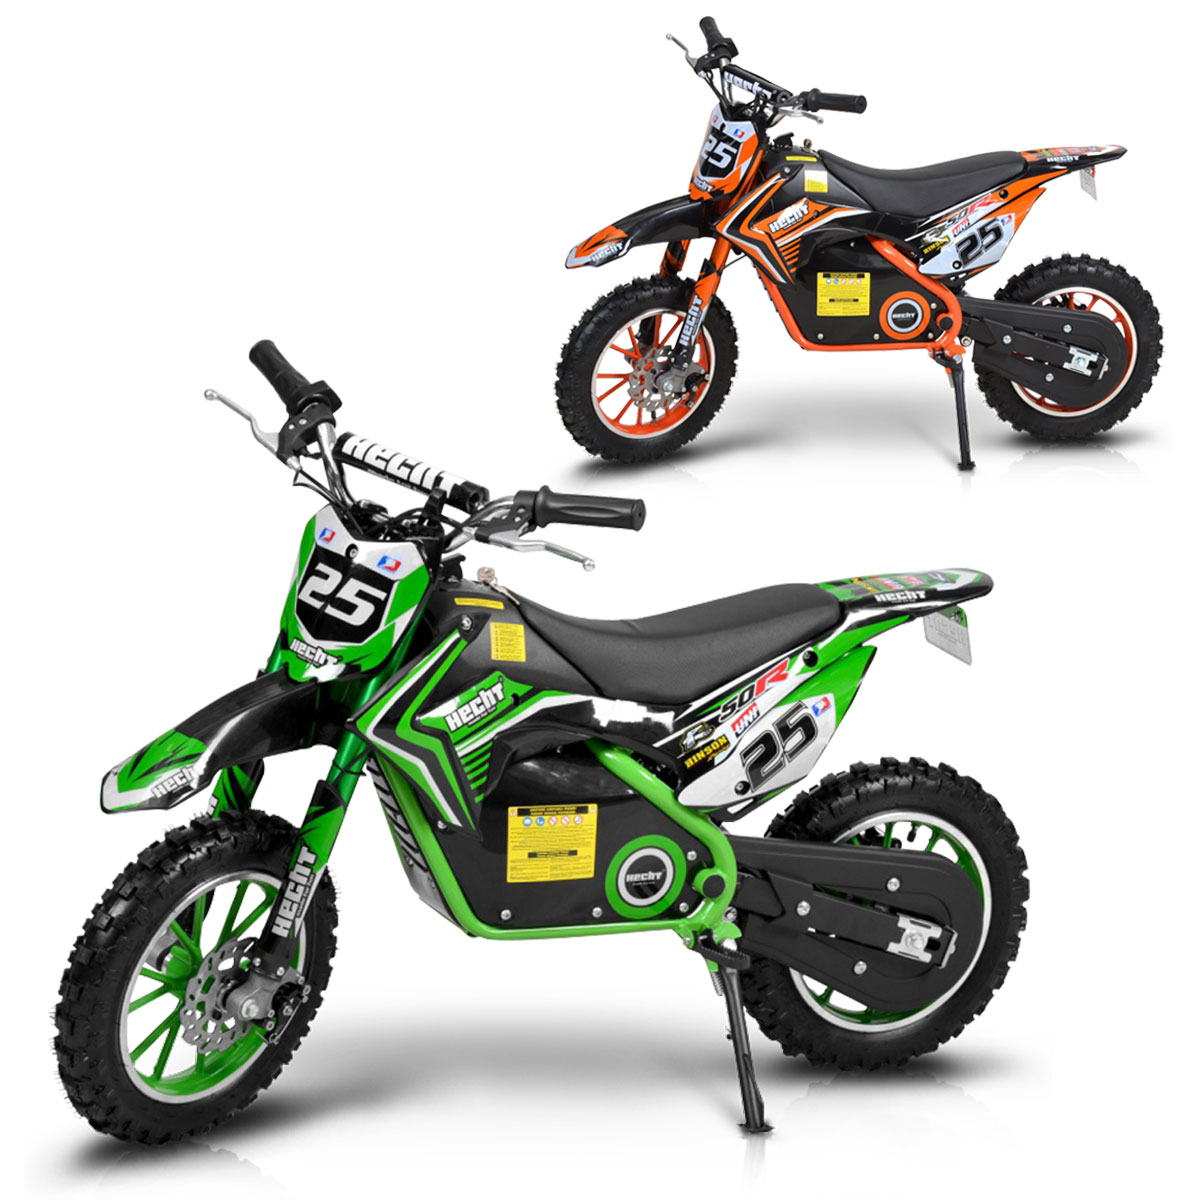 hecht pocketbike elektro kindermotorrad elektrobike. Black Bedroom Furniture Sets. Home Design Ideas